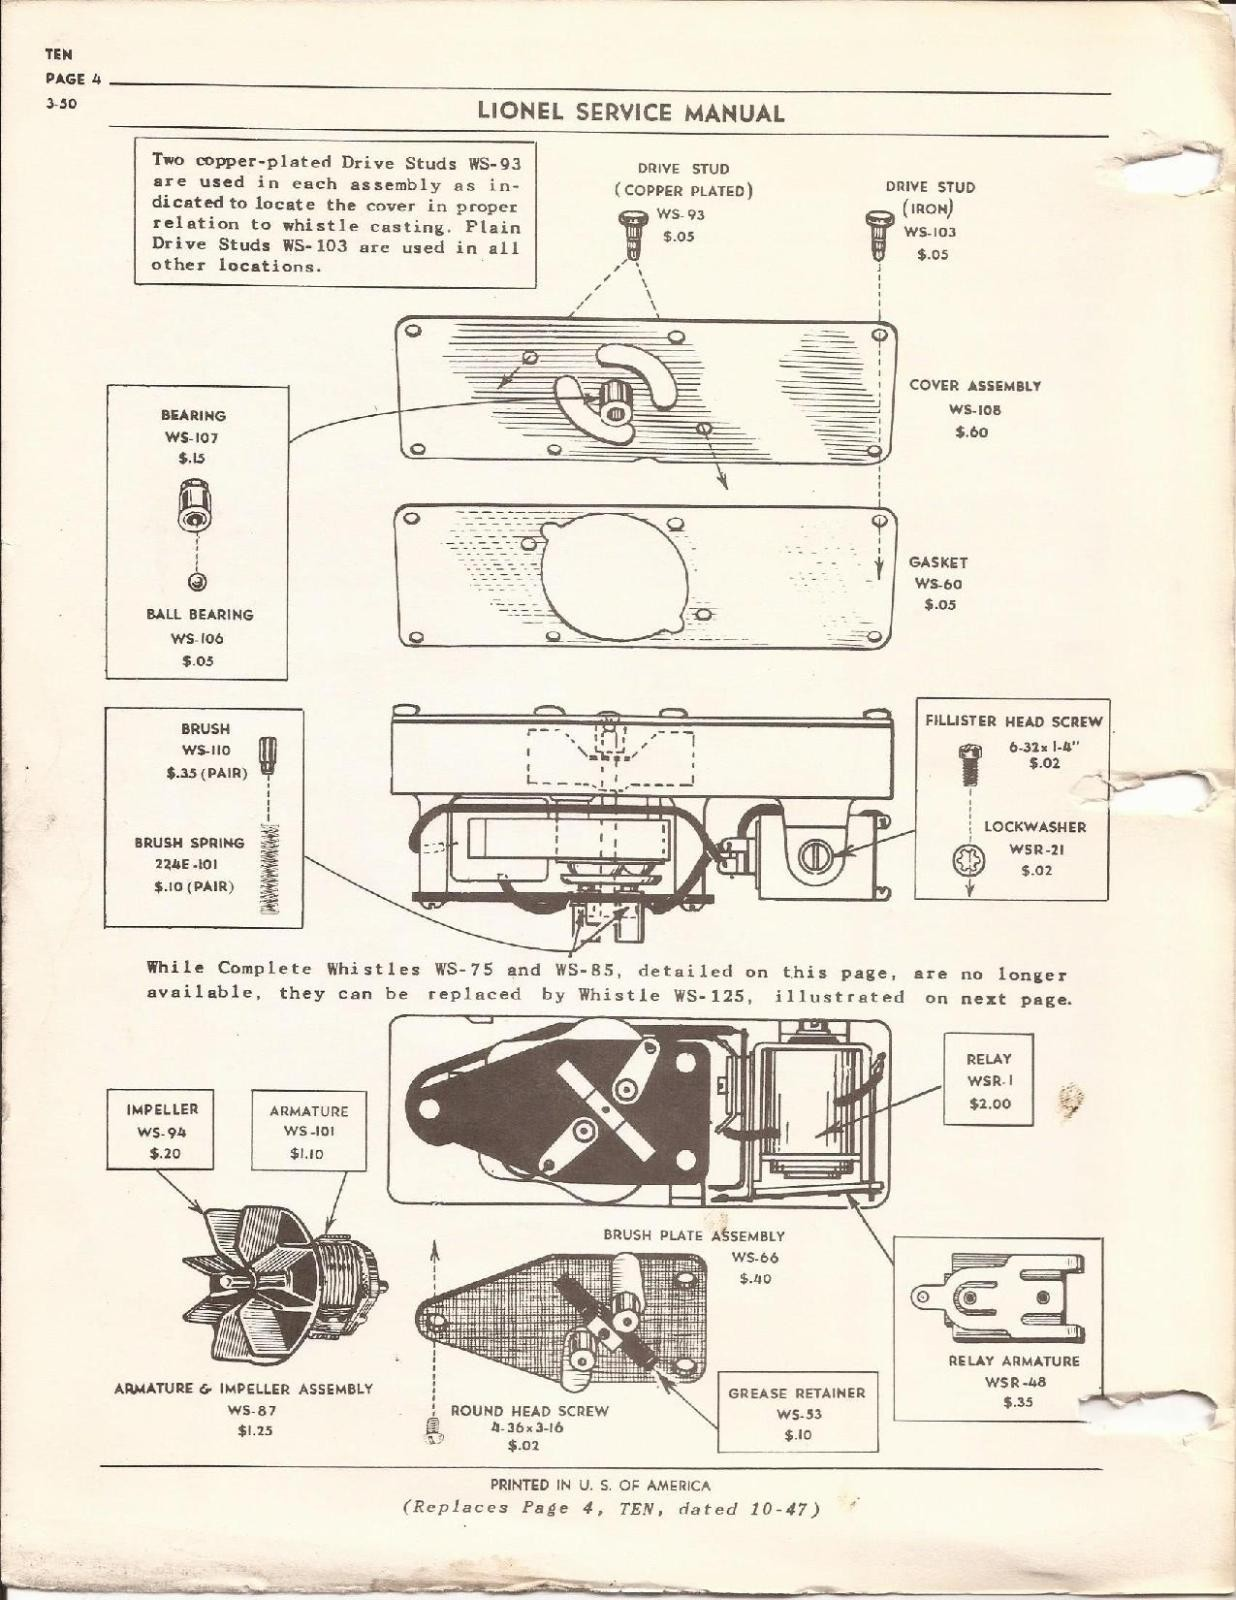 Lionel Tender Wiring Diagram